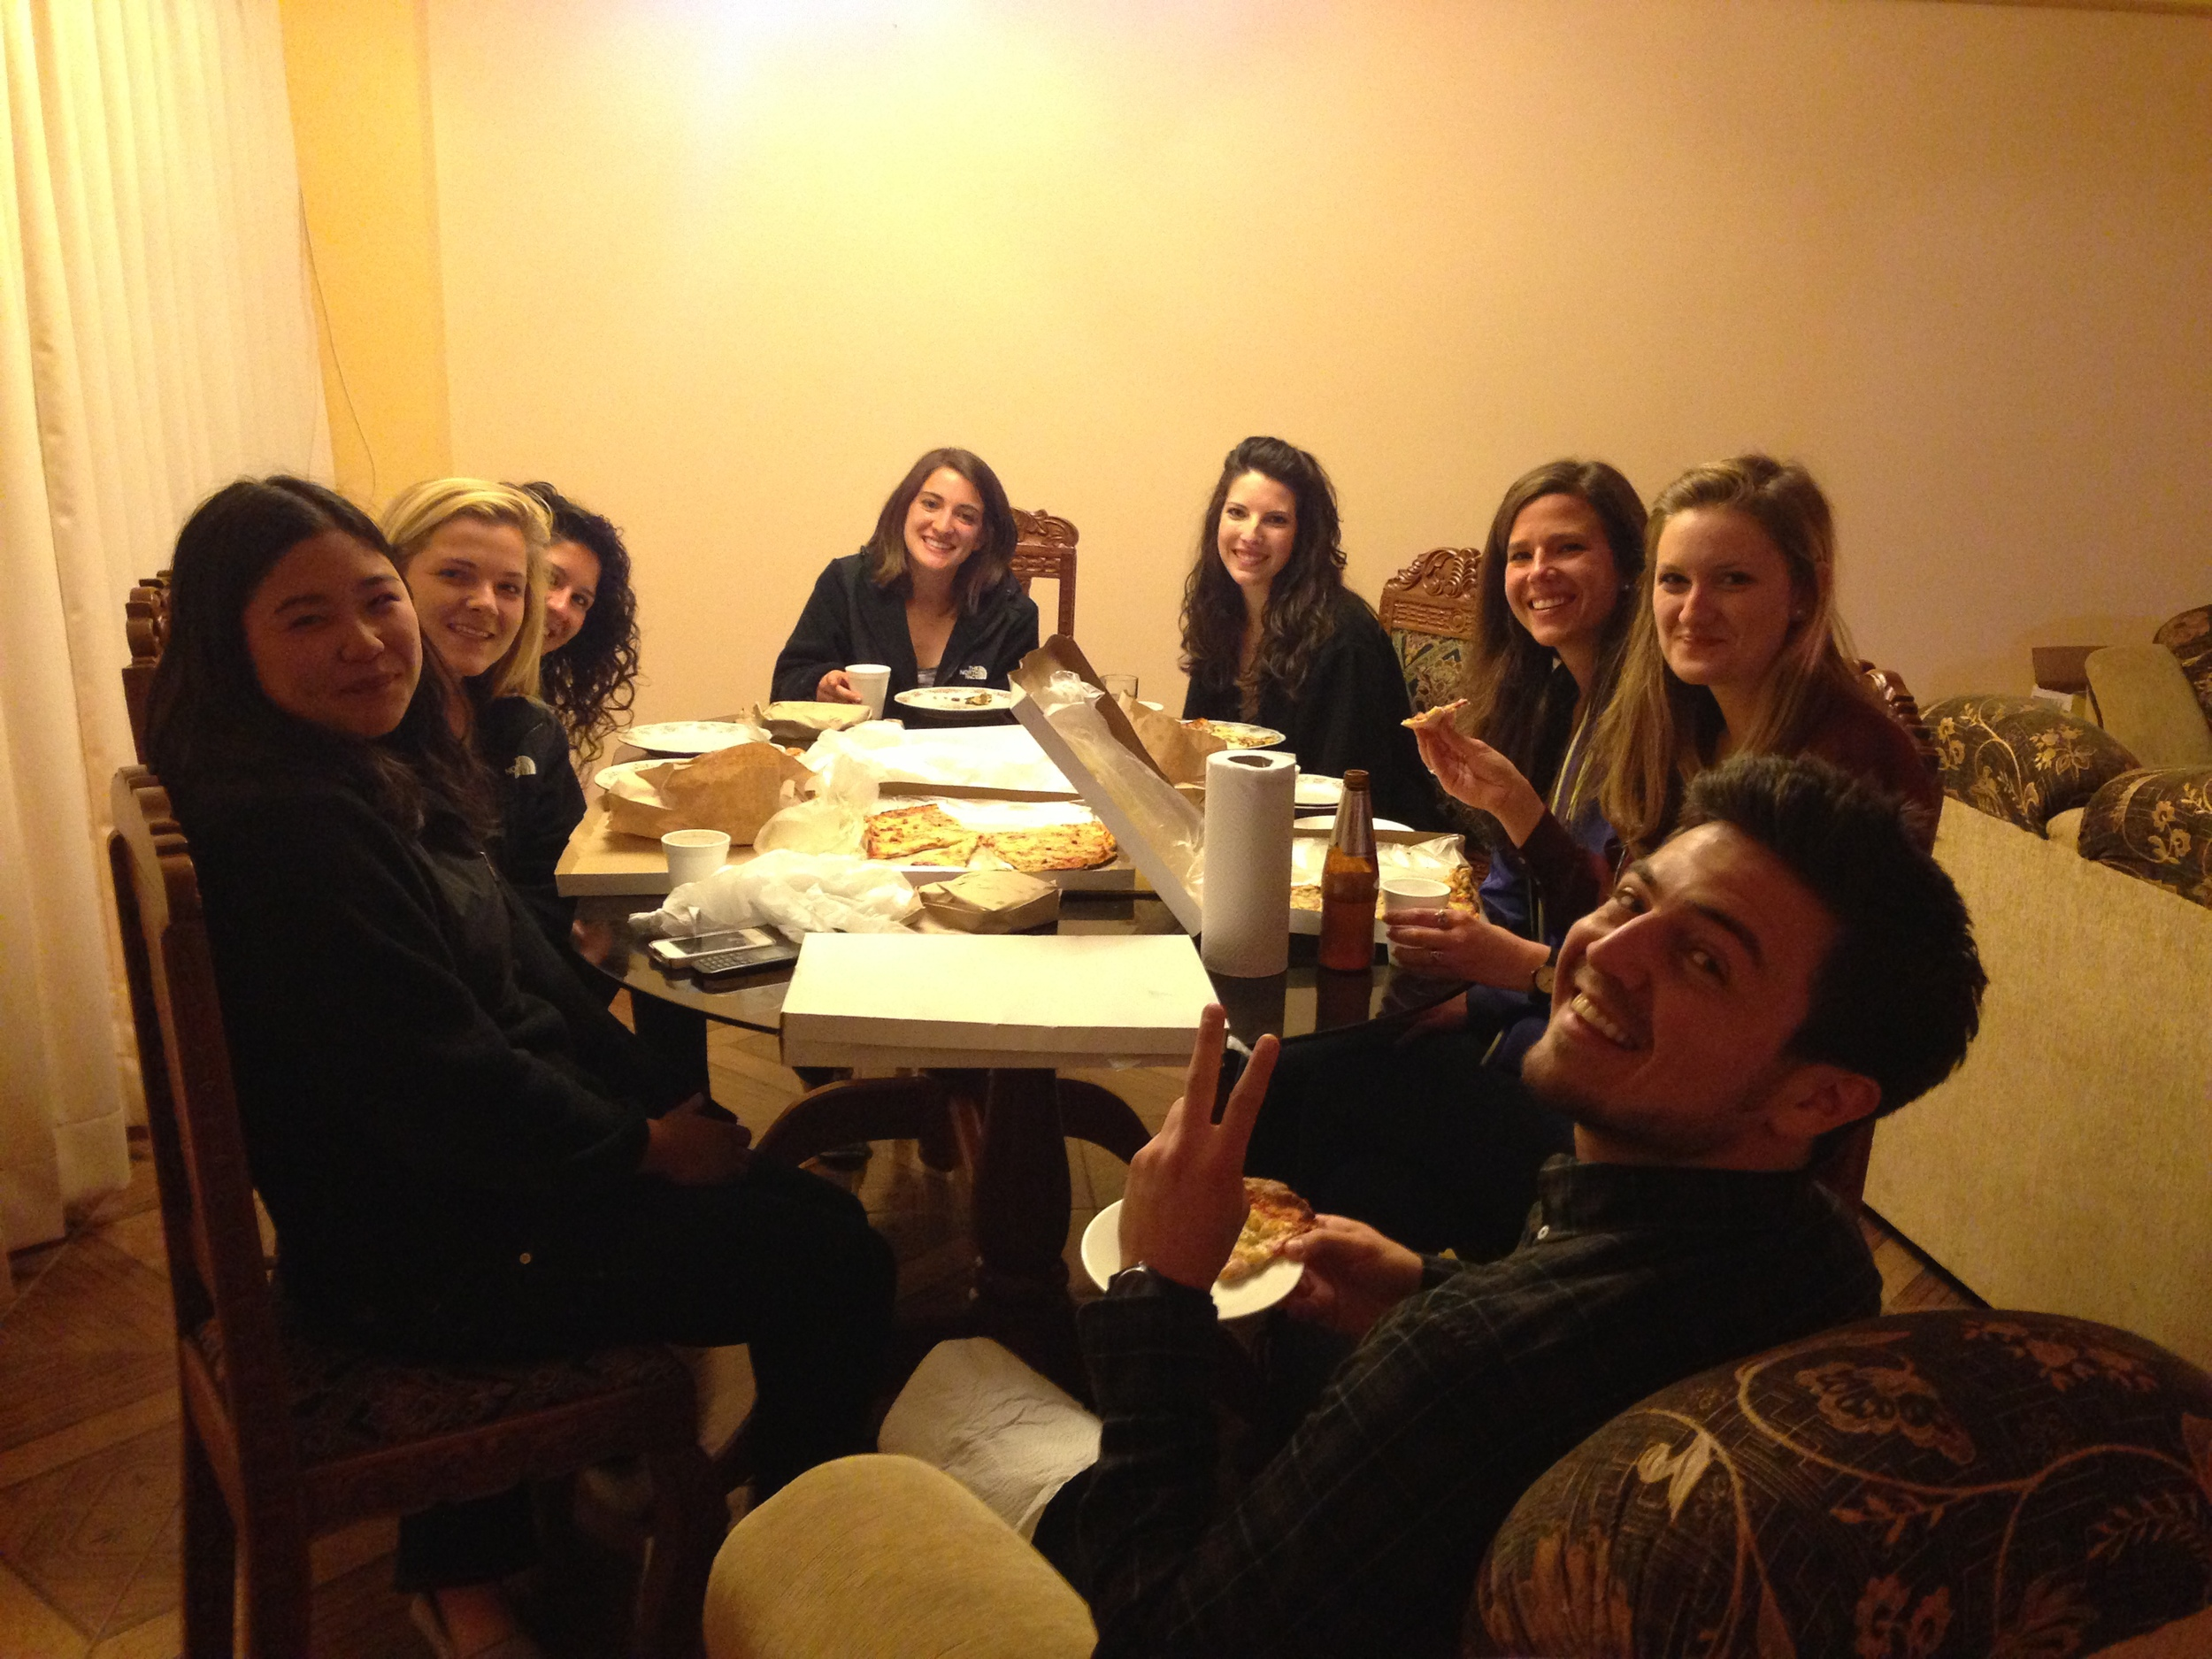 """Our team dinner celebration of a very successful first day of enrollment! The interns thoughtfully brought a tasty chocolate cake that said, """"Alma Sana, Si se puede"""". Photo taken: June 1, 2013."""